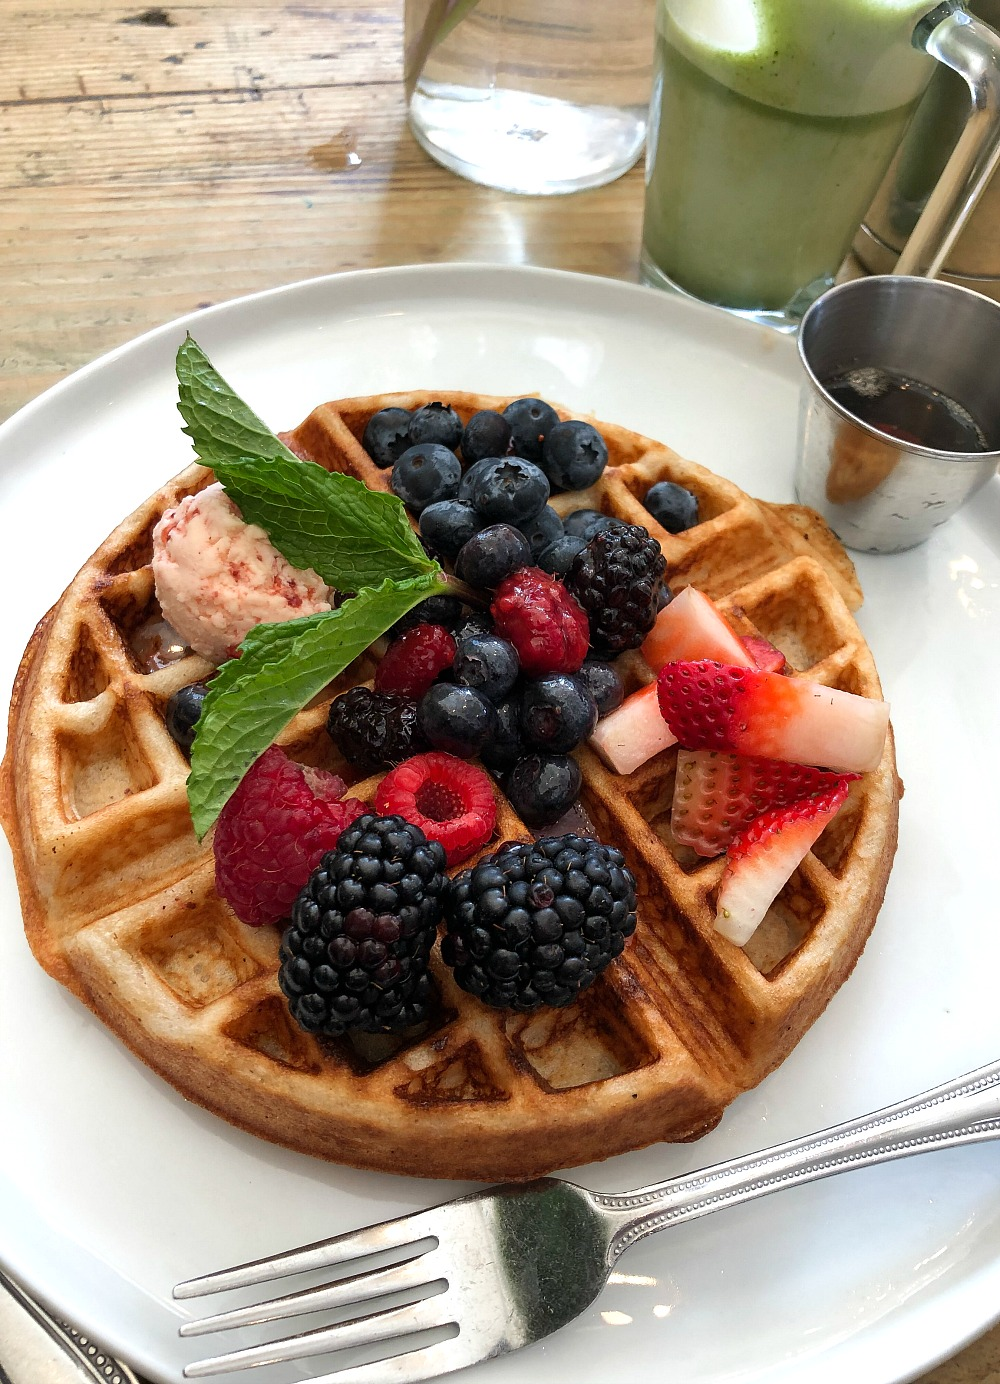 Affordable New York City Travel Guide I The Butcher's Daughter Vegan Waffle #Travel #TravelGuide #NYC #VeganEats